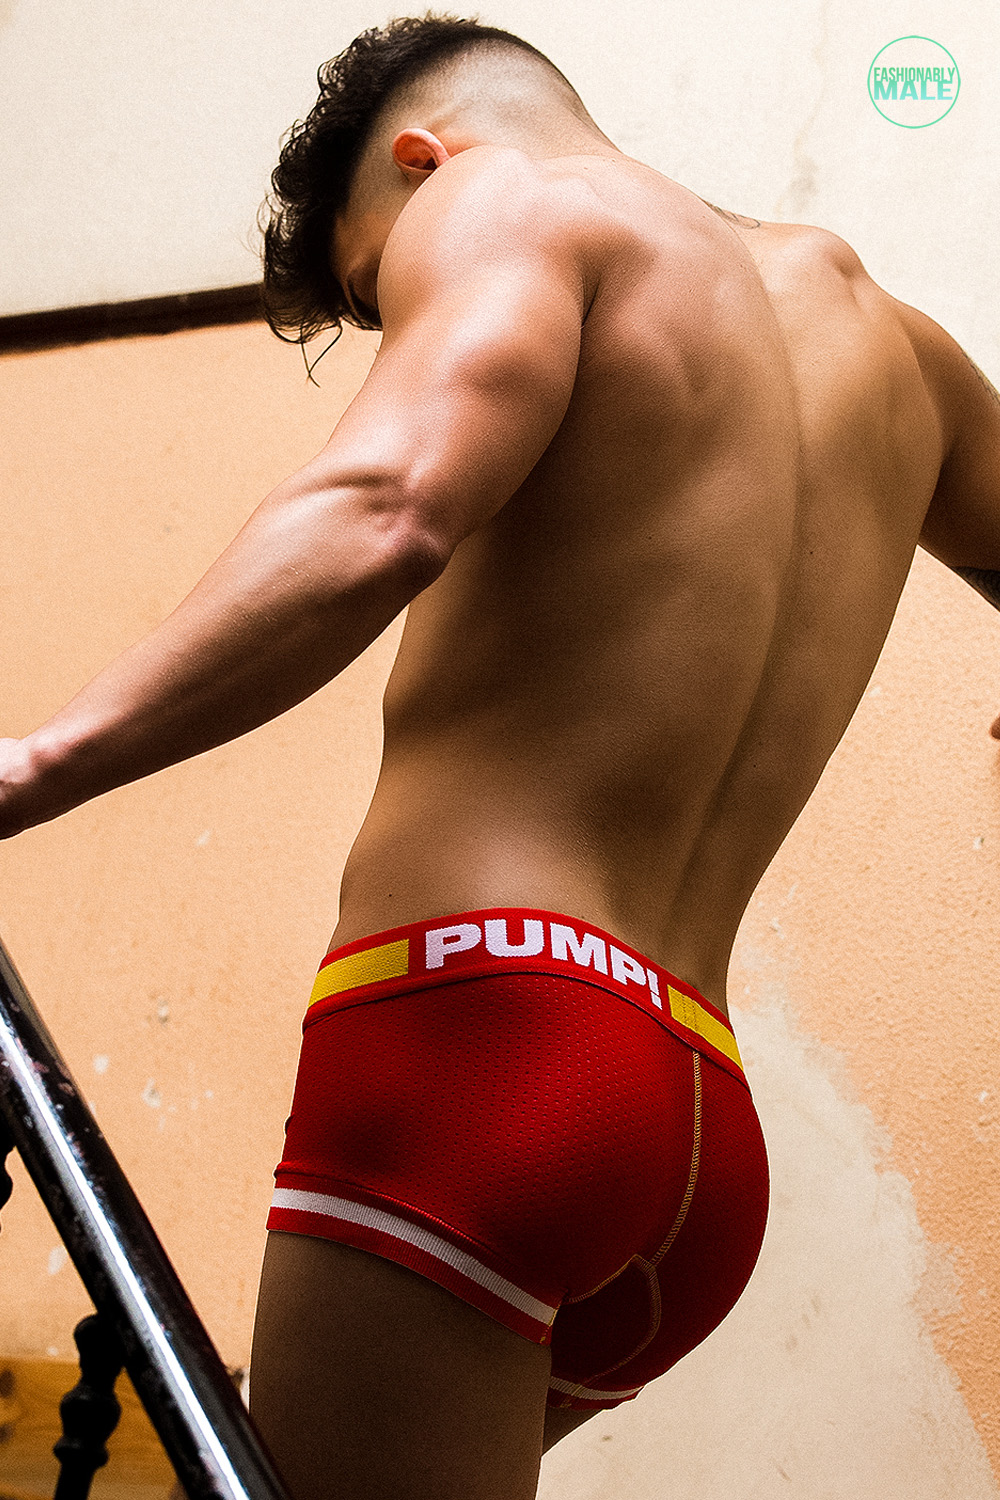 Andoni Jozu by Adrian C. Martin on PUMP3